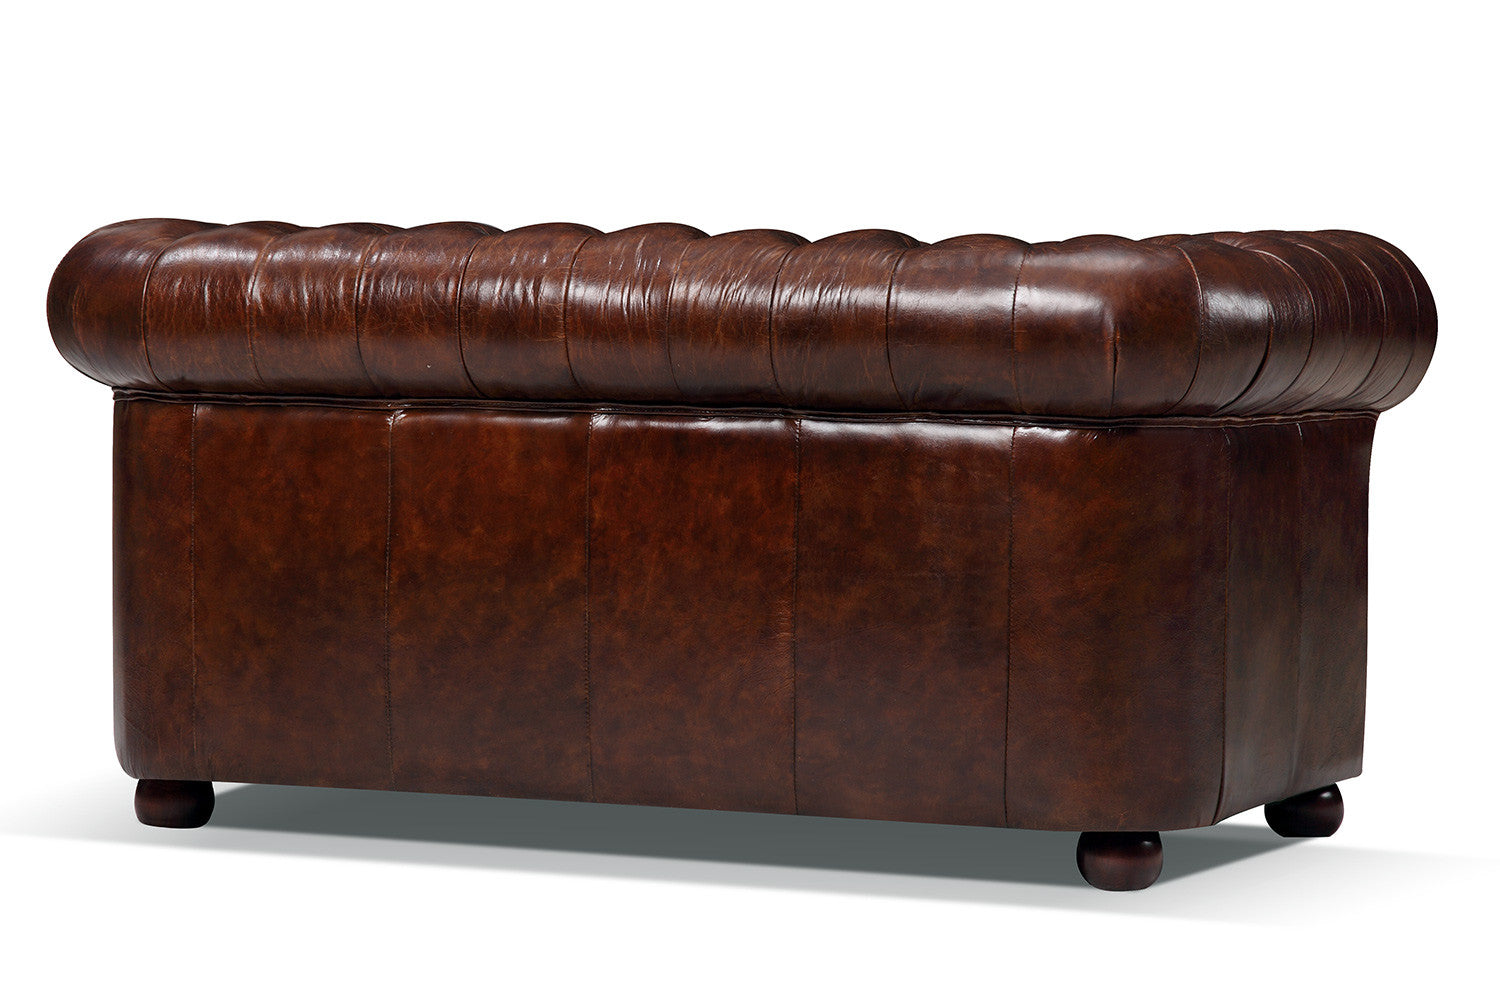 The Original Chesterfield Loveseat Rose And Moore